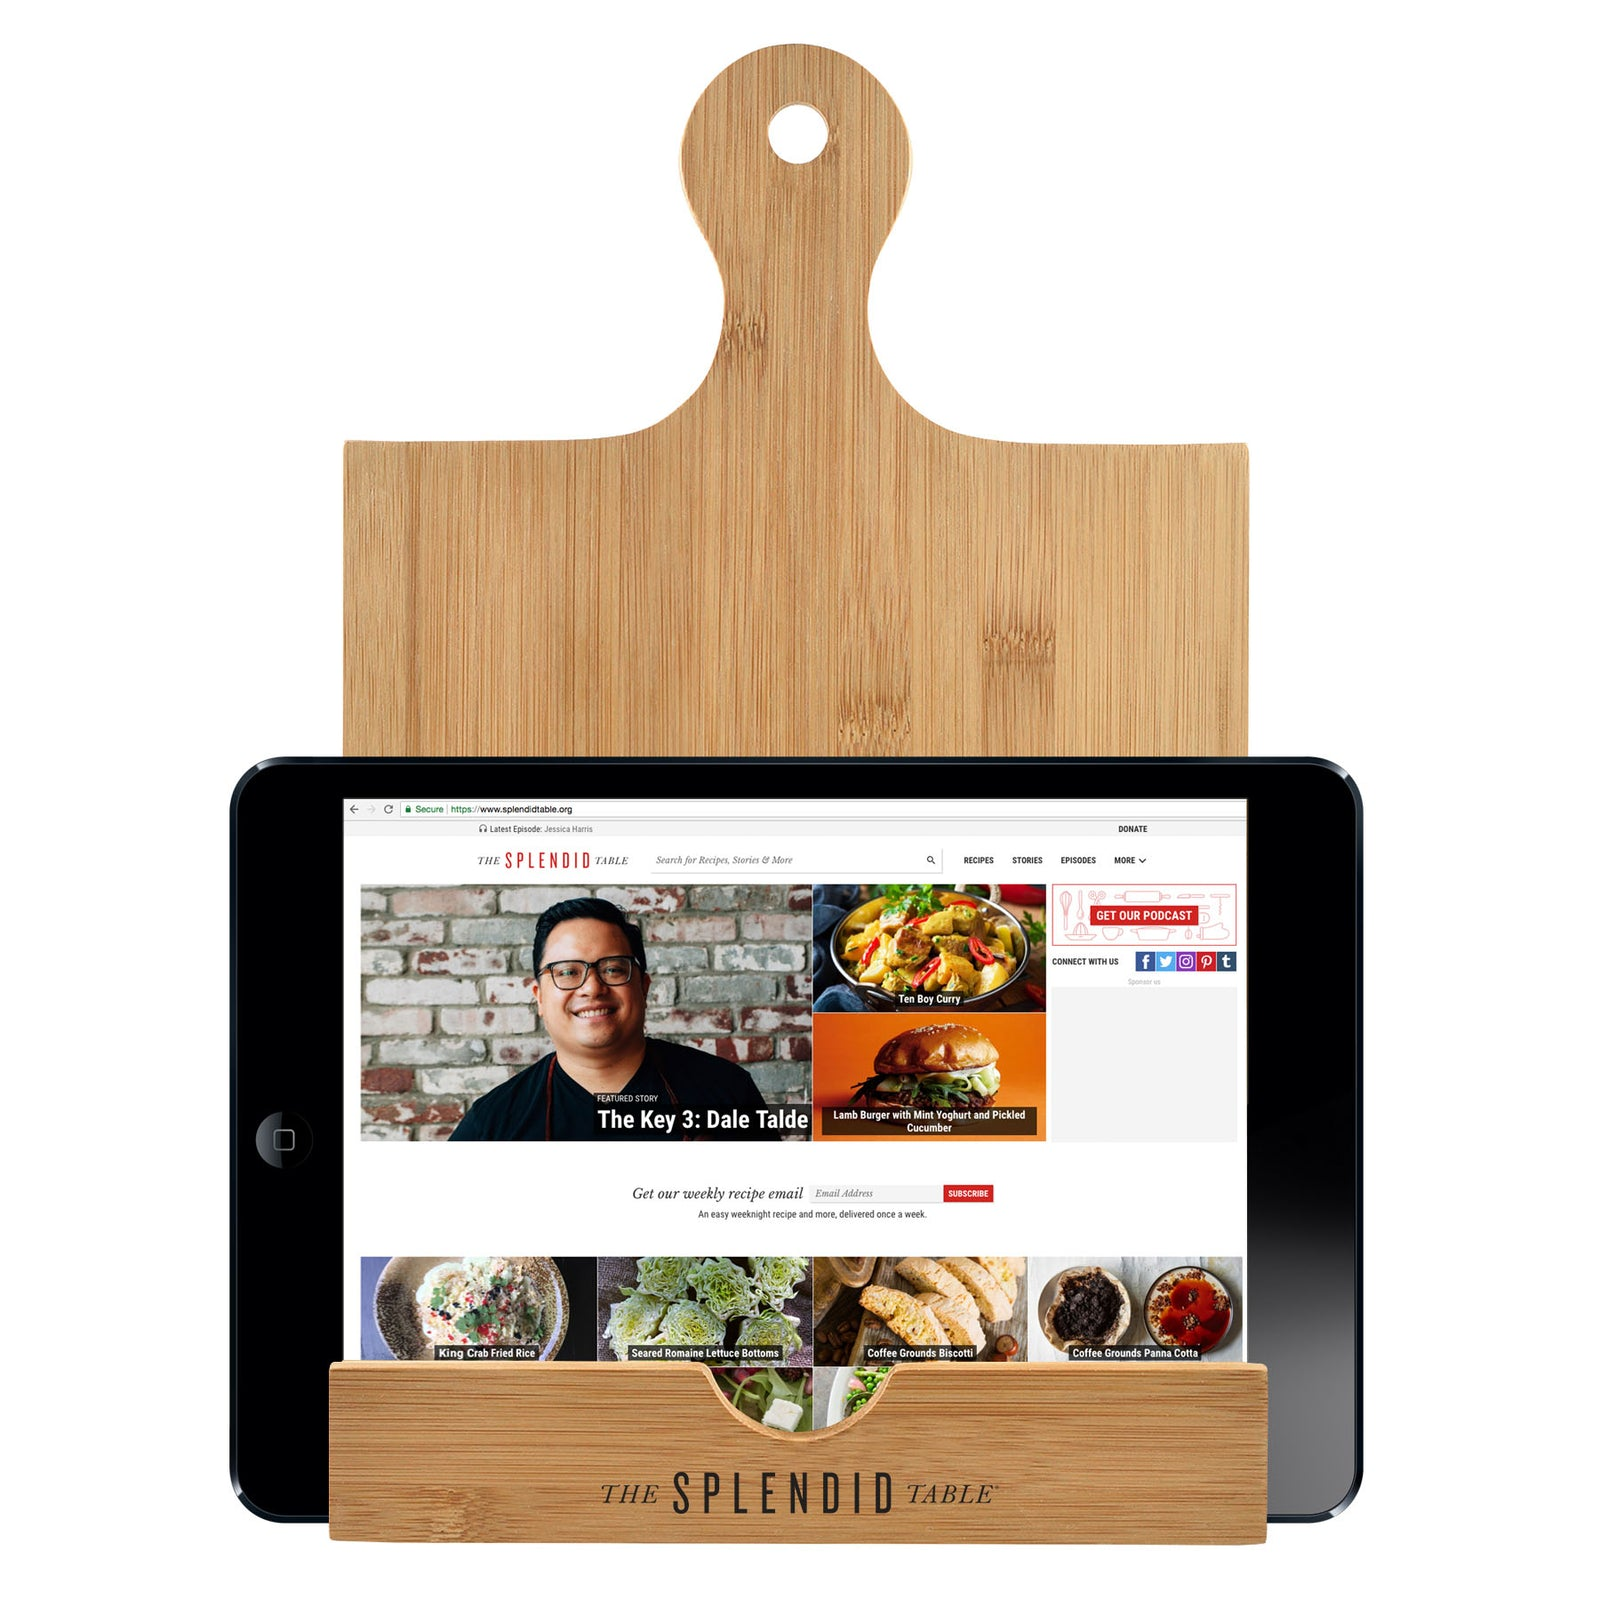 The Splendid Table Tablet/Cookbook Stand